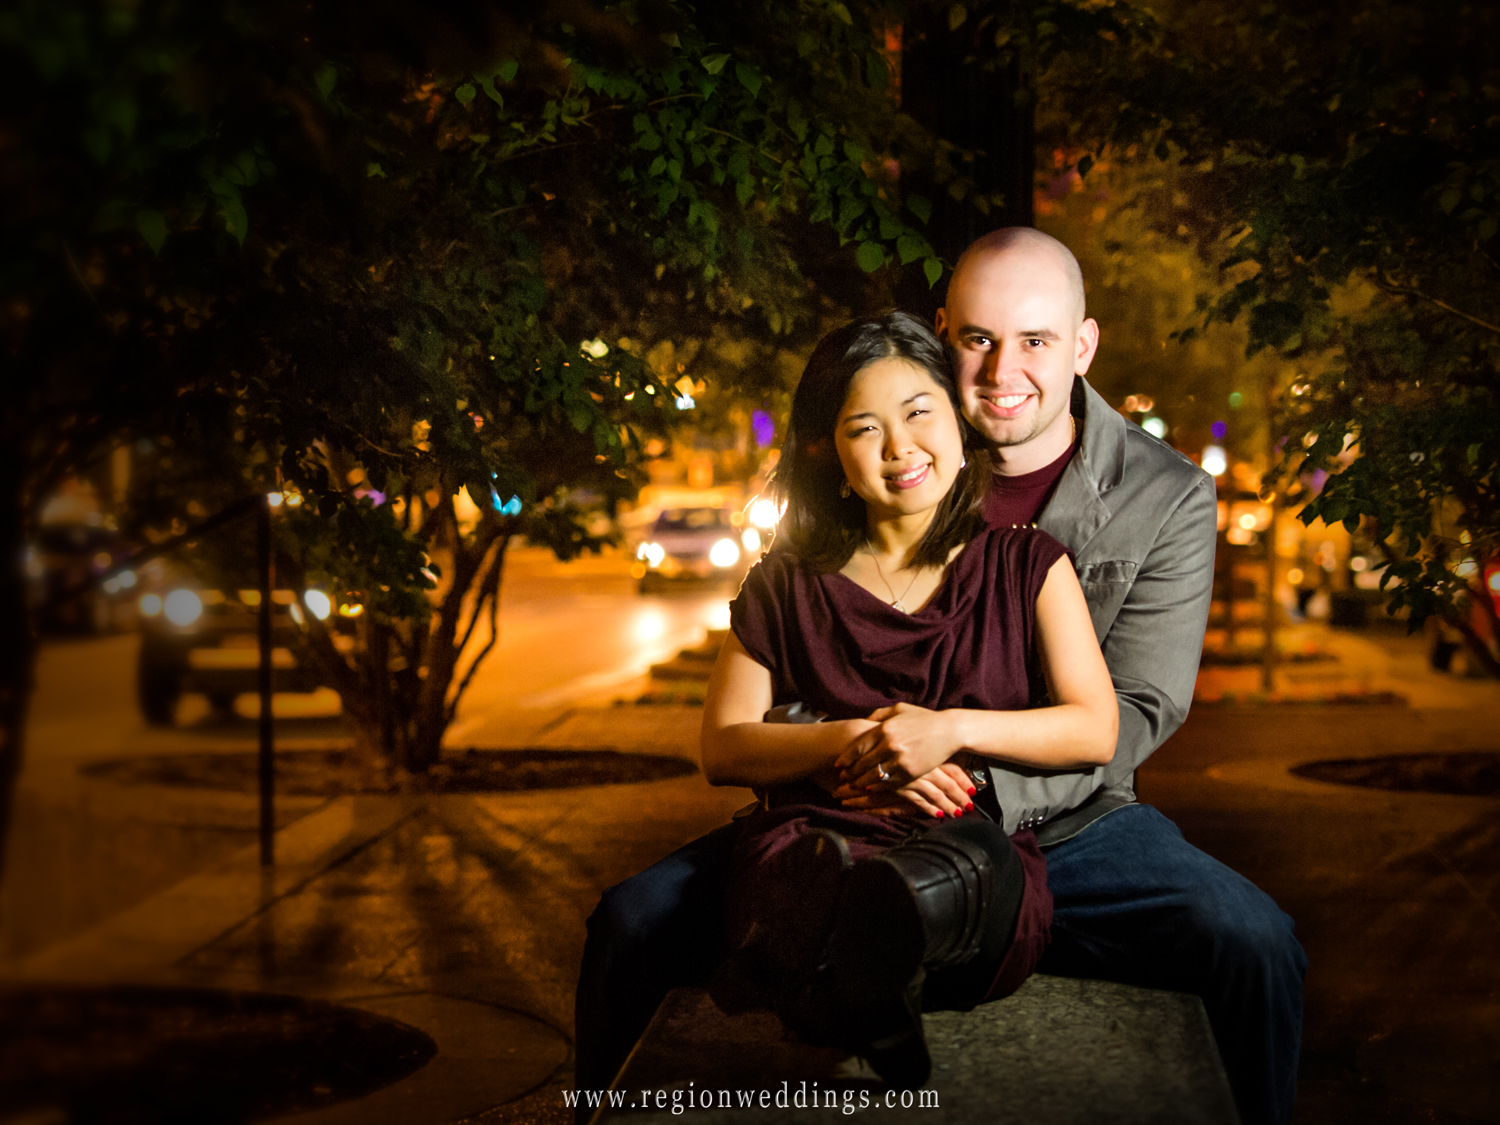 A couple poses on a bench in downtown Chicago for this romantic night time engagement photo.